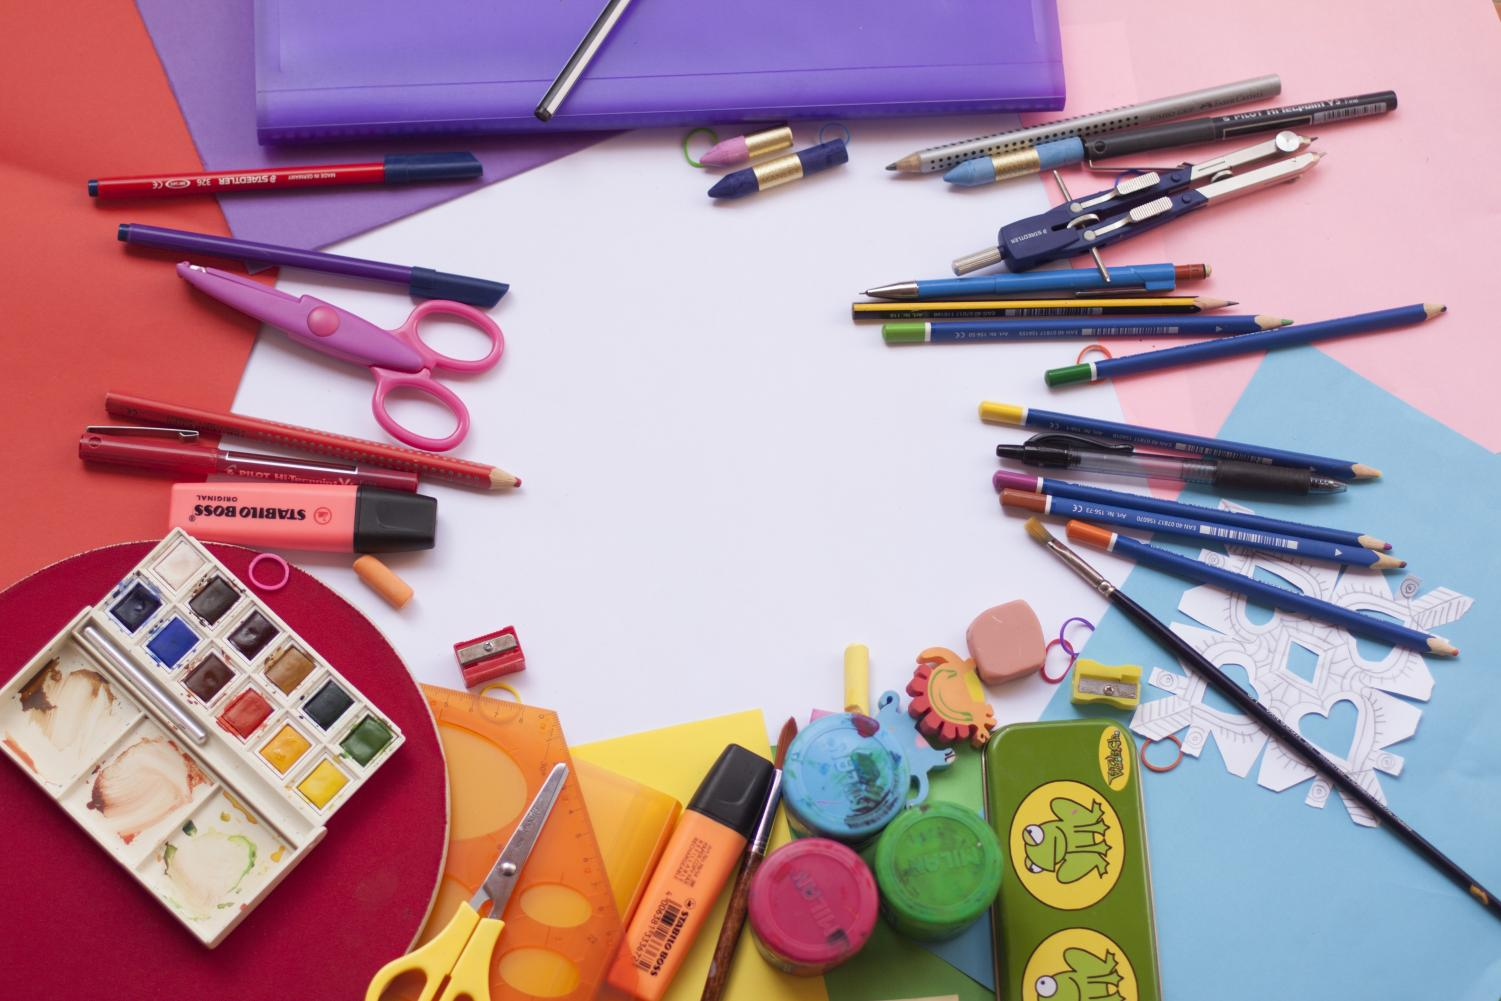 This is an image of some art supplies that are similar to the art supplies in Mrs. Speer's room.